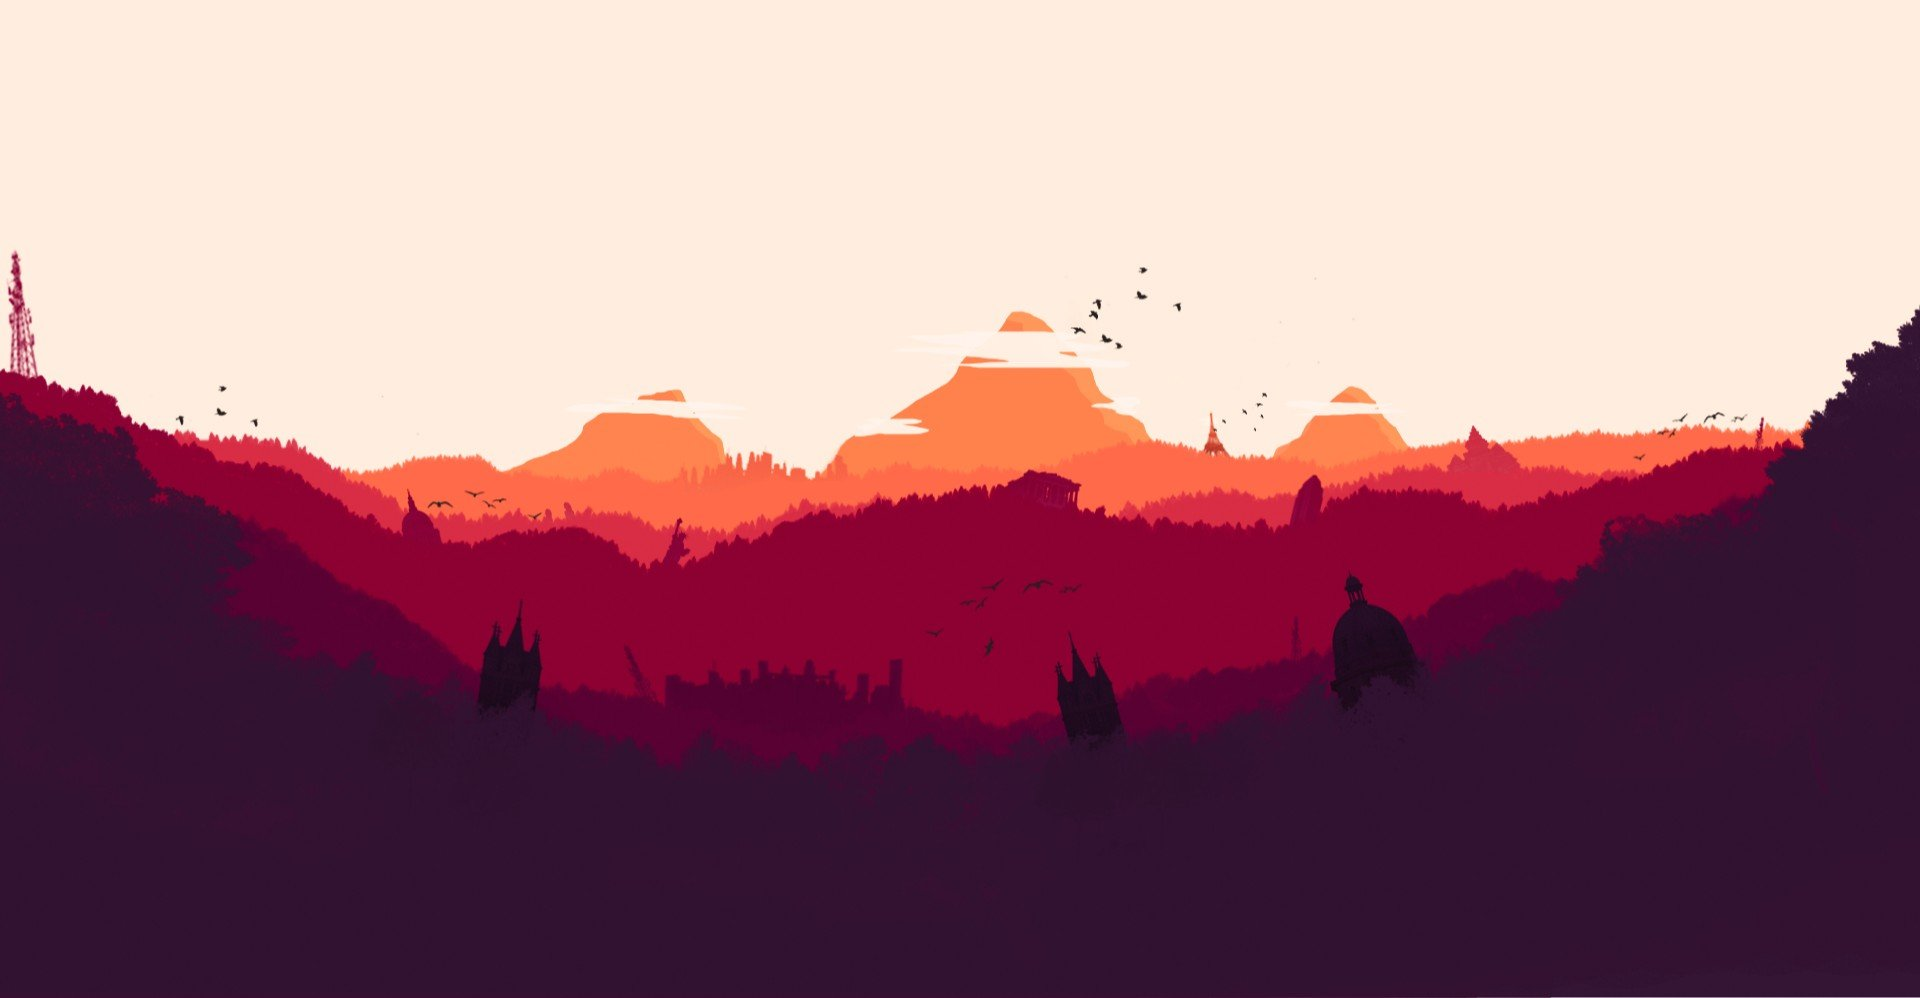 How To Design Video Game Landscape